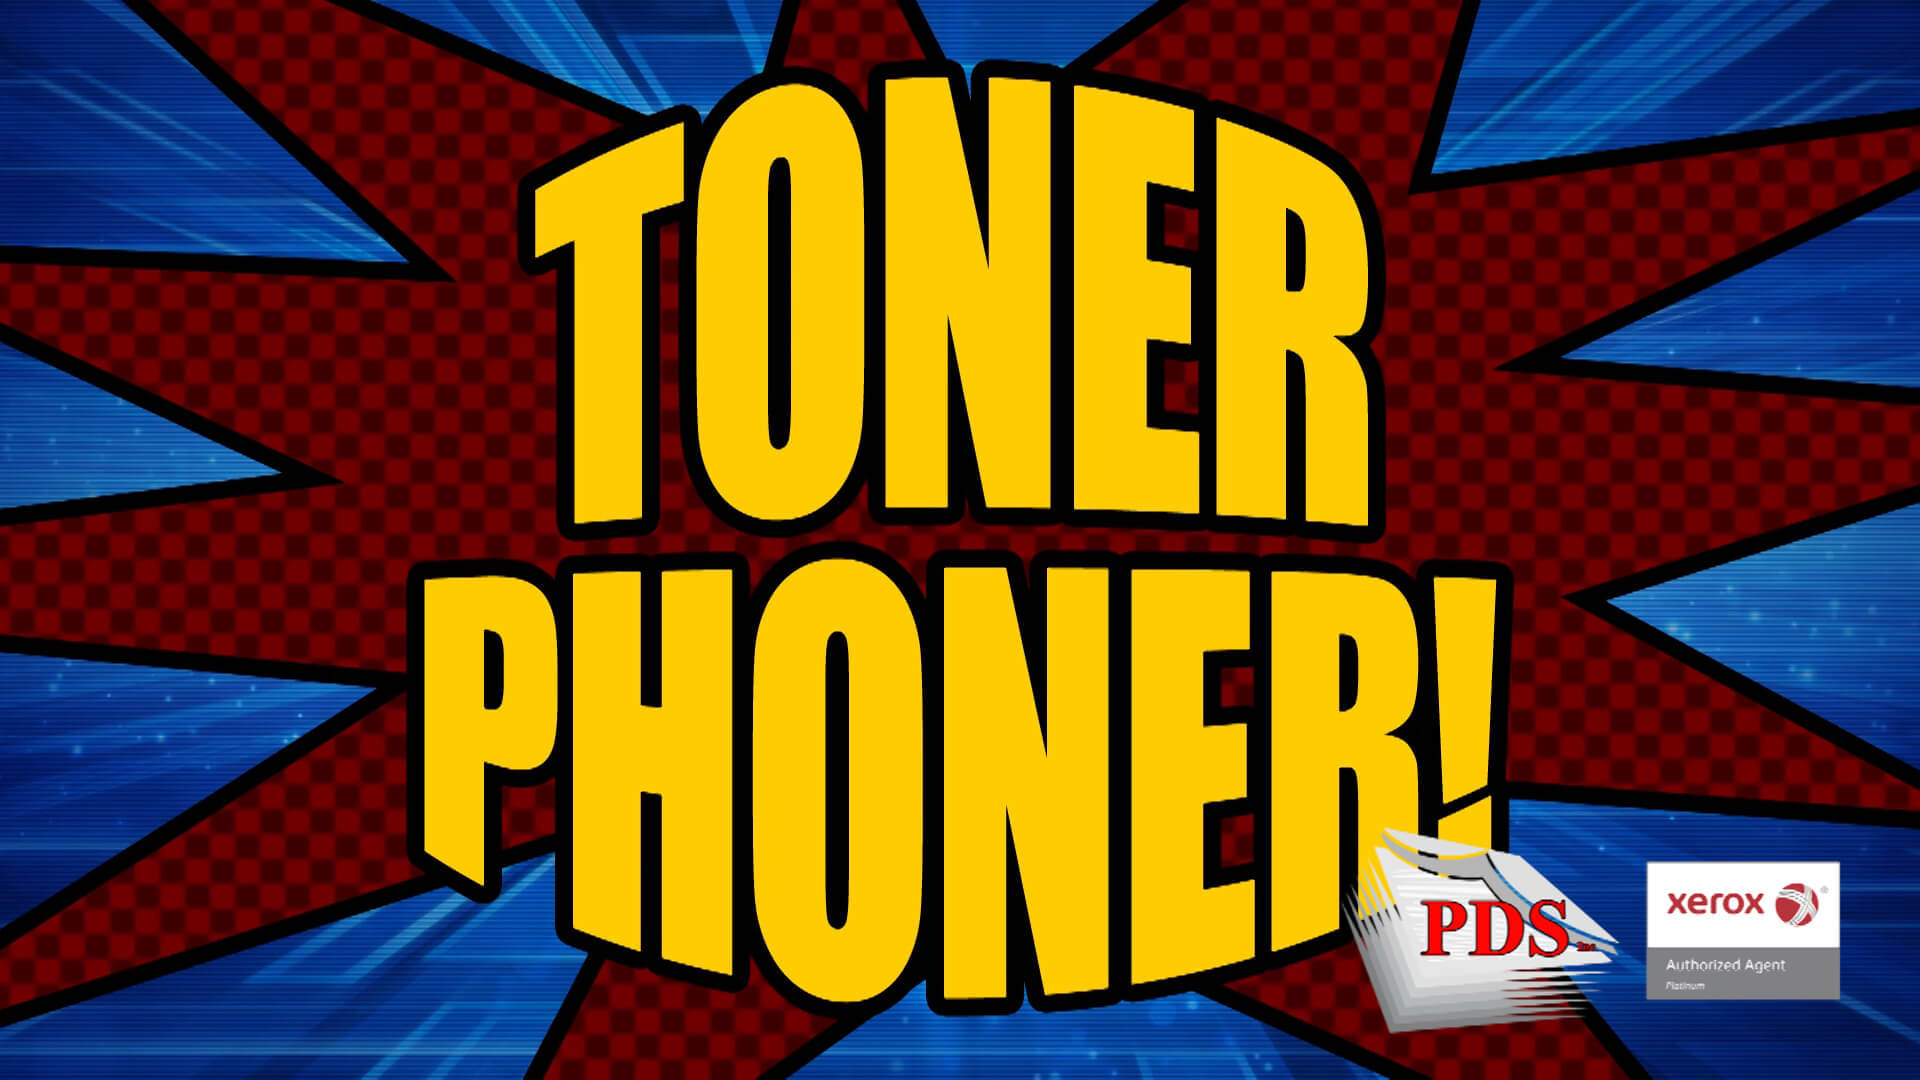 Buyer Beware Toner Phoner Scams Things You Should Know